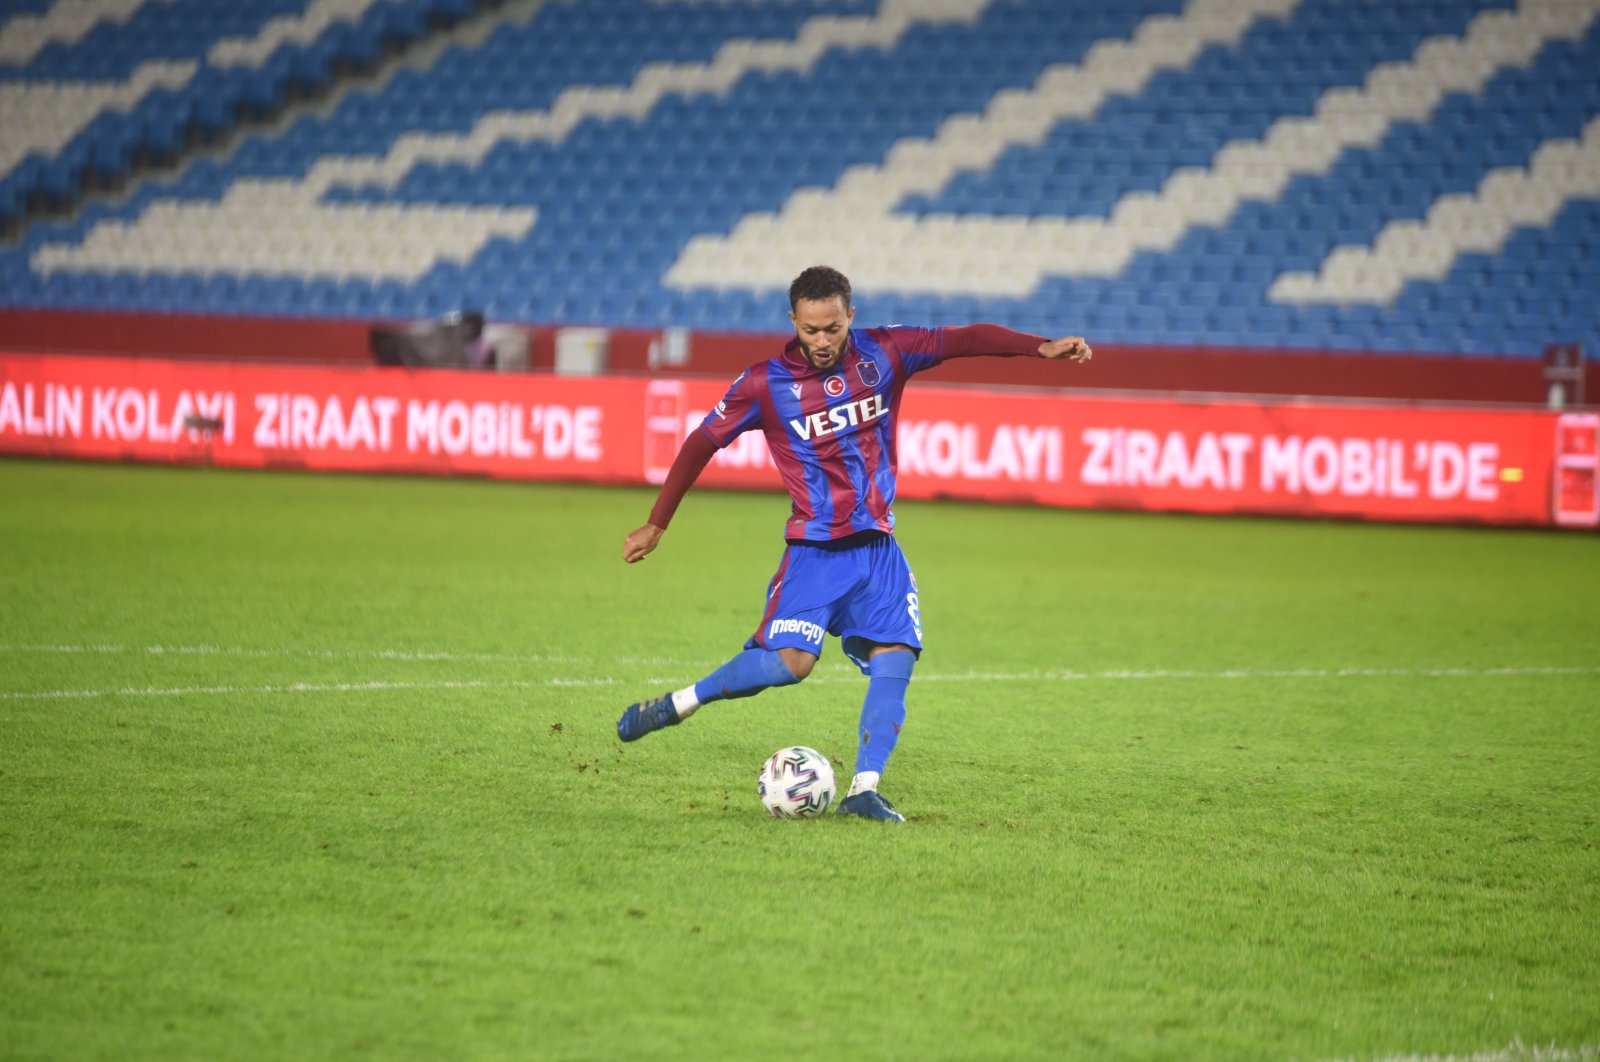 Trabzonspor's Lewis Baker takes a penalty during the Ziraat Turkish Cup match against Adana Demirspor, Trabzon, Turkey, Dec. 16, 2020. (IHA Photo)